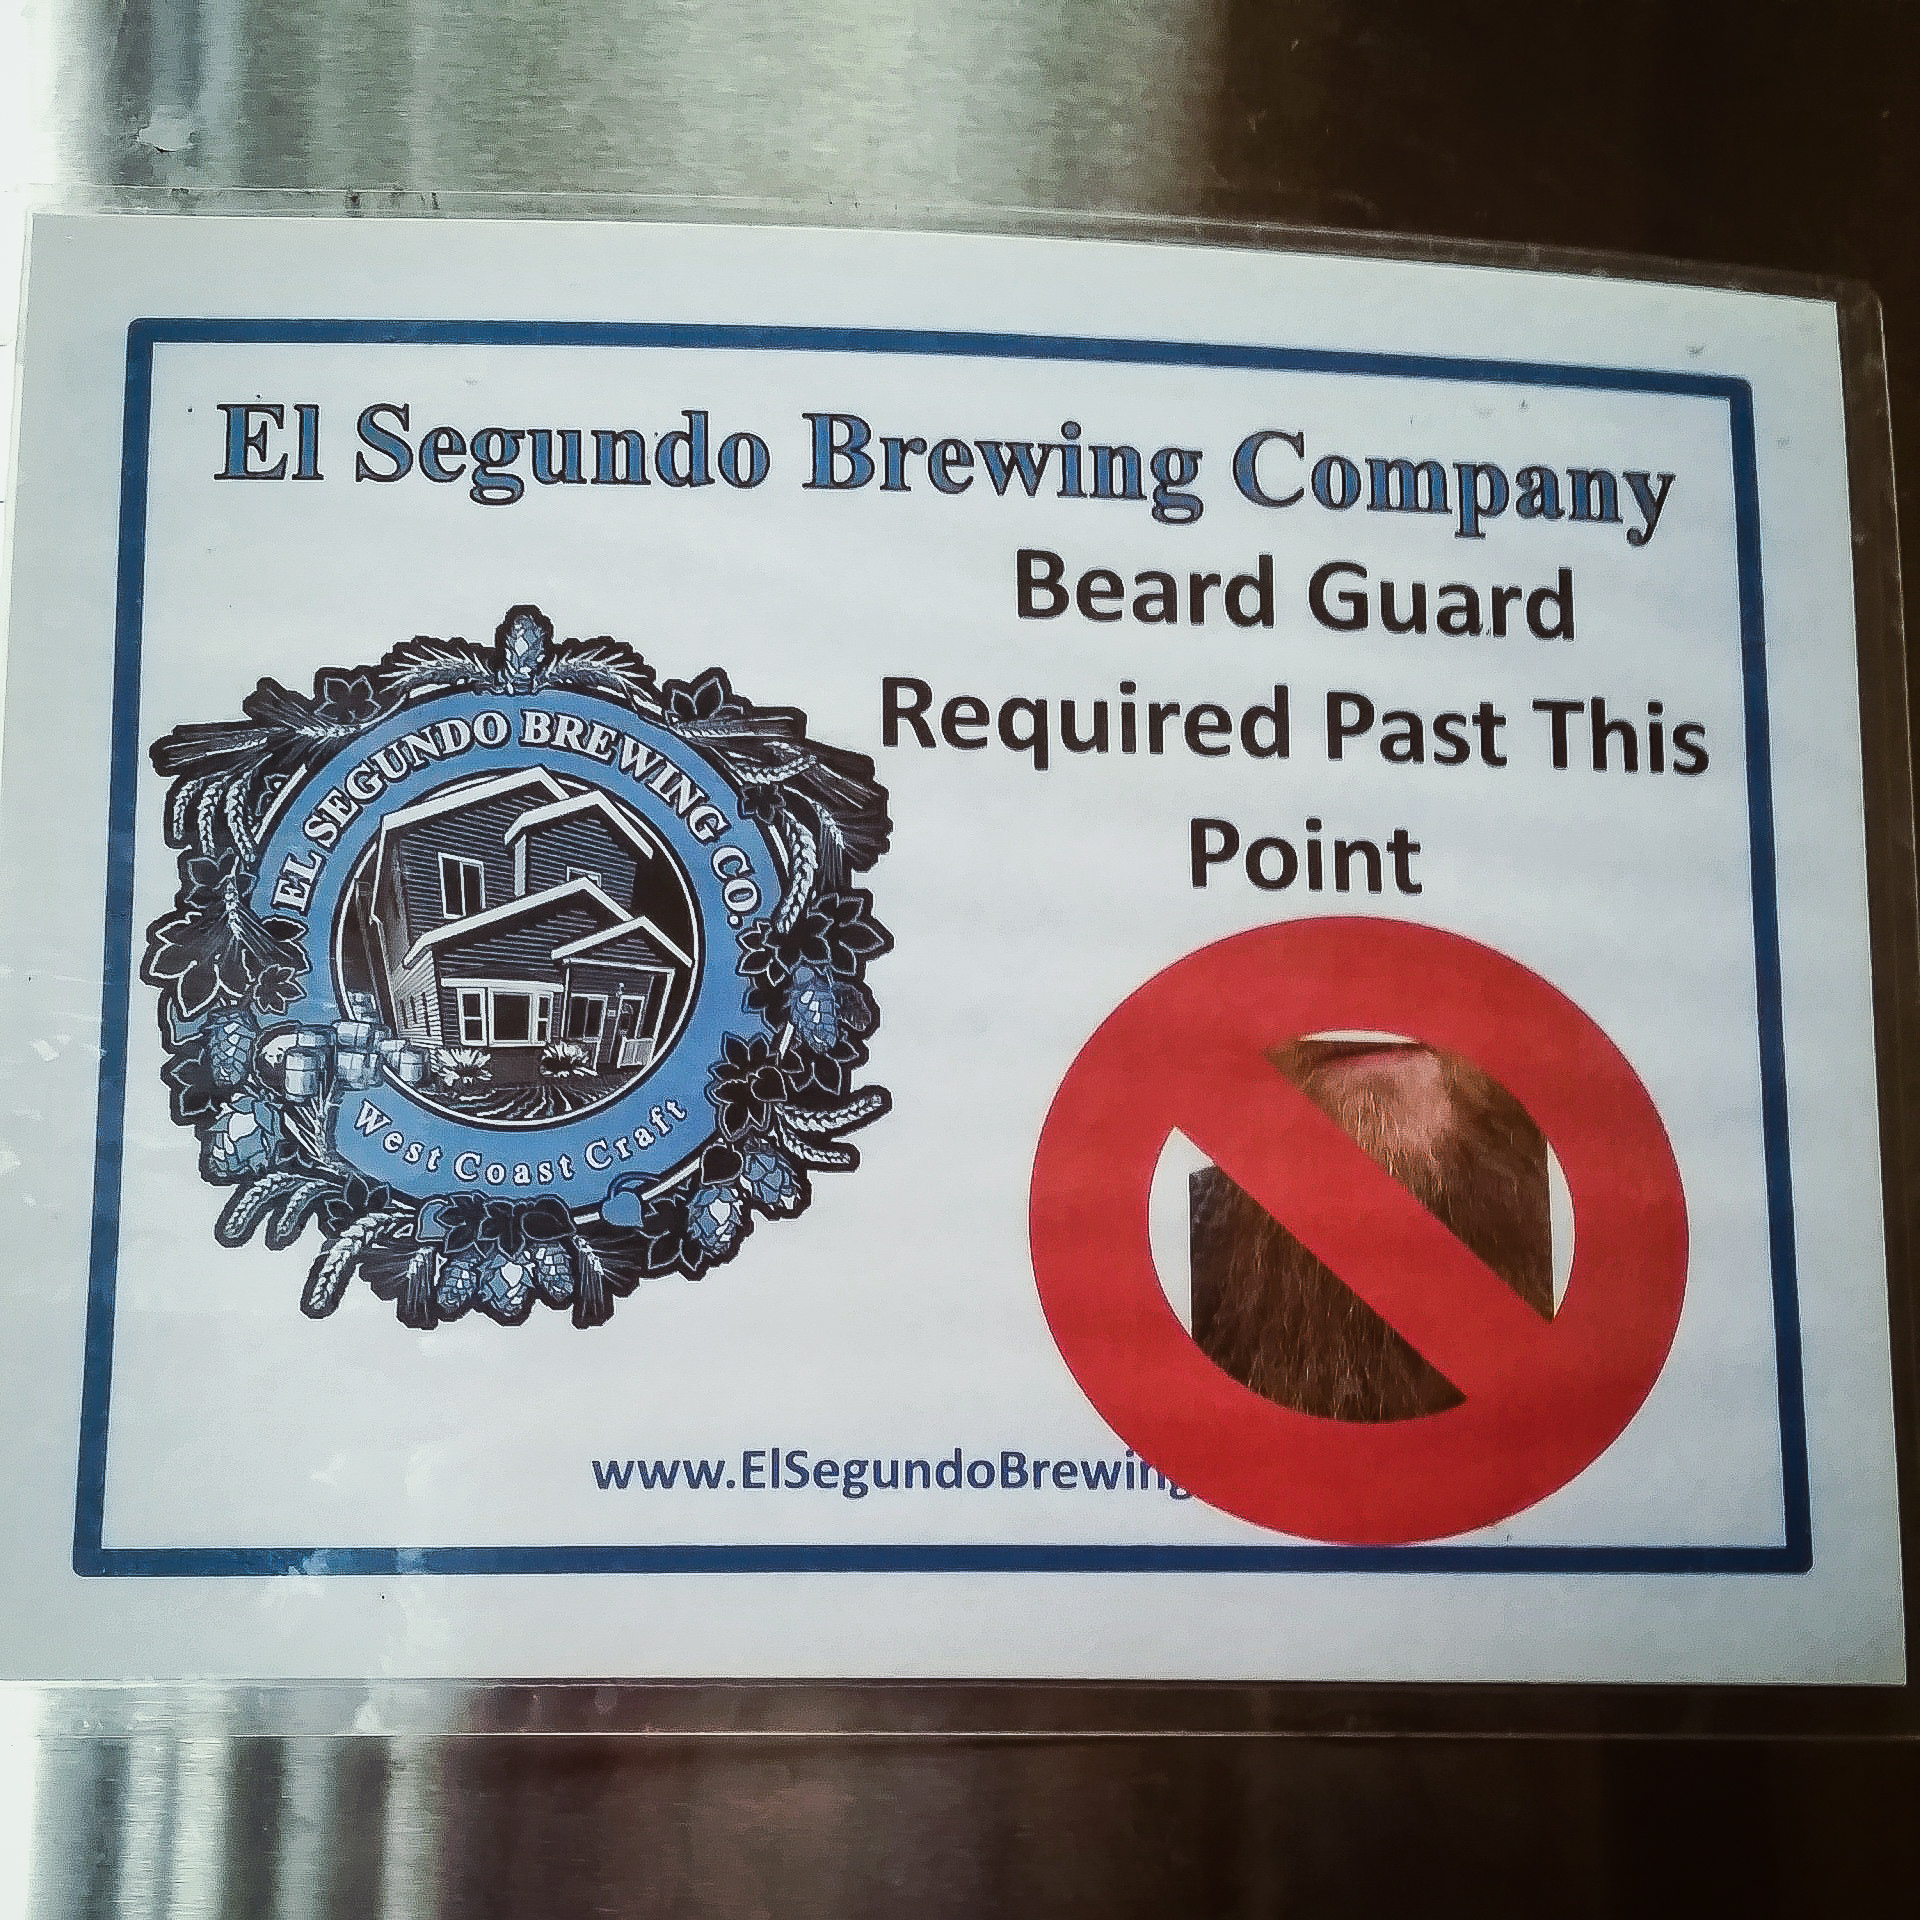 El Segundo Brewing Co. - NO BEARDS WITHOUT GUARD